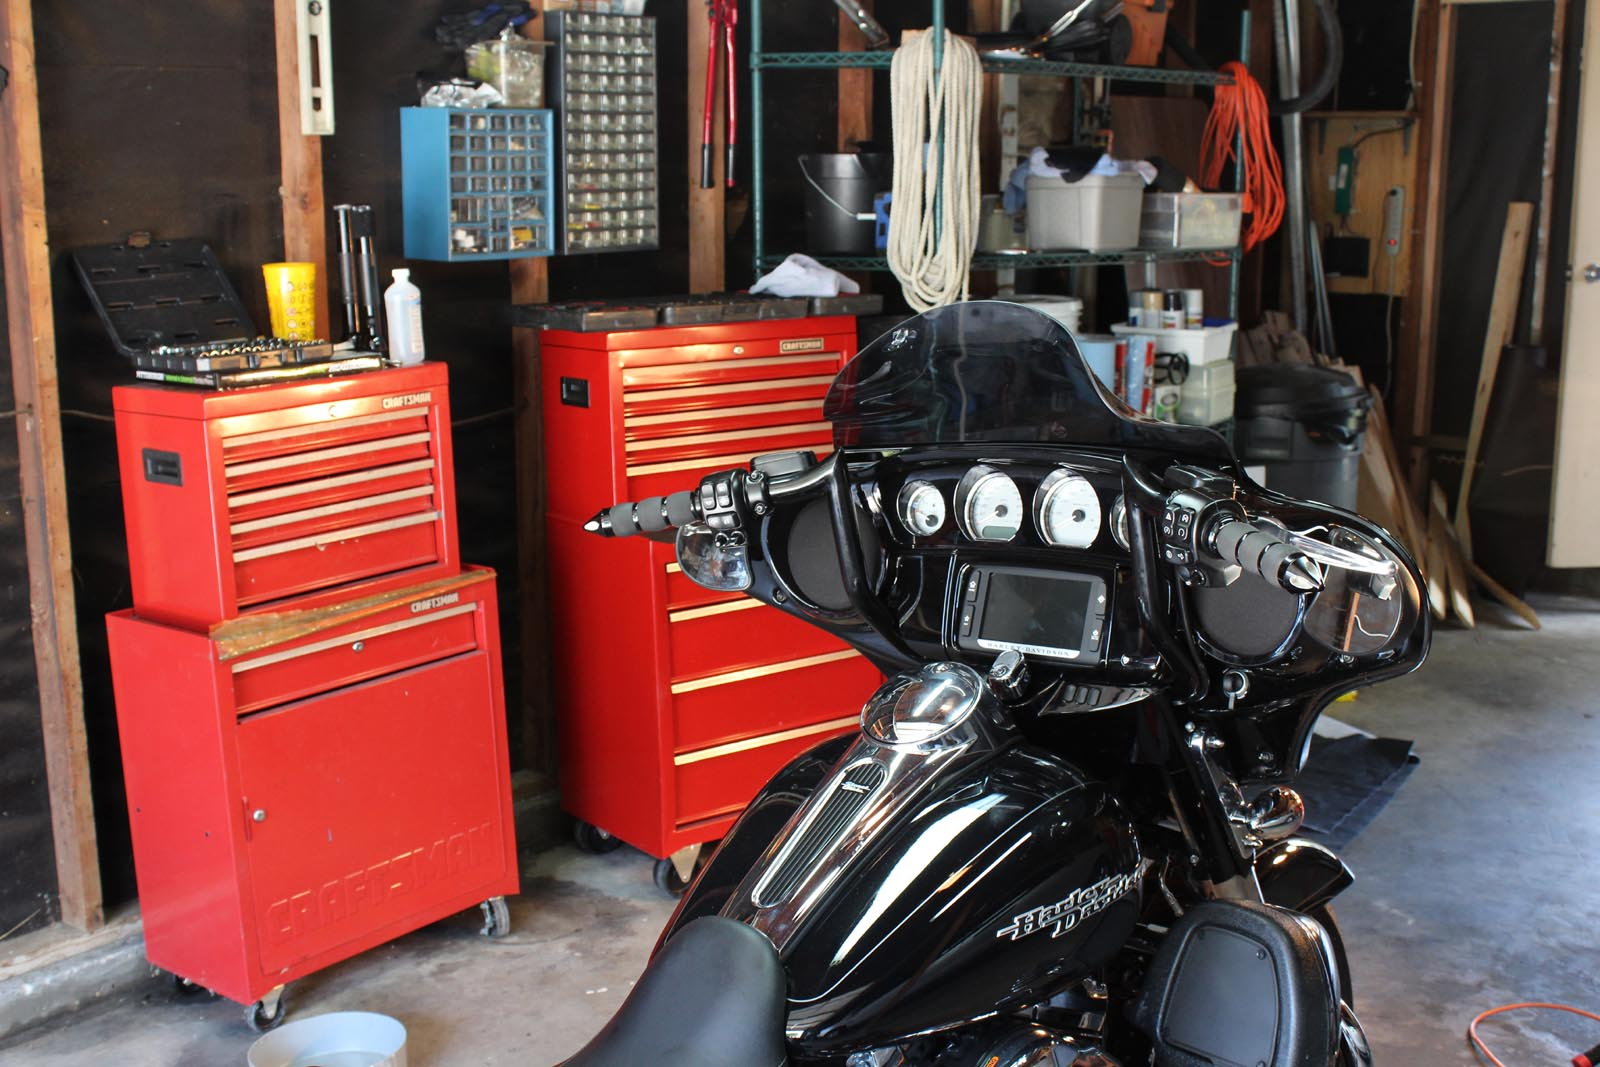 Getting the New Bike Setup - Ride it Wrench It